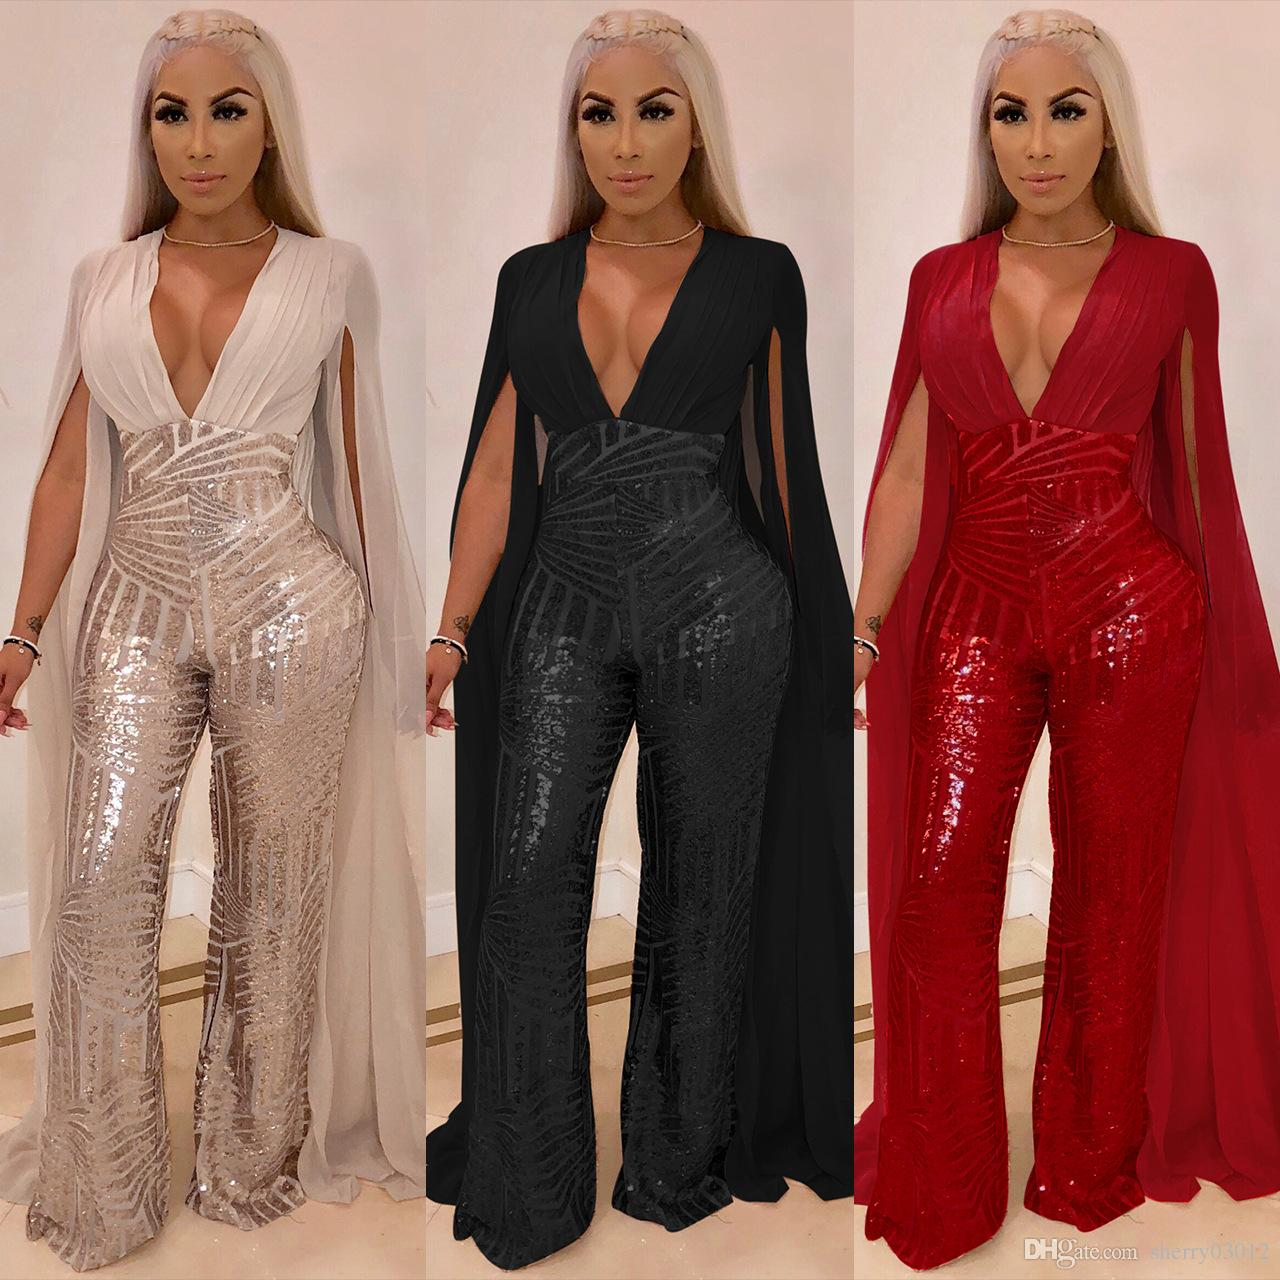 4c142524553 2019 Women Chiffon Split Long Sleeve Sequin Jumpsuit 2019 Sexy V Neck  Patchwork Loose Wide Leg Sleeved Romper Evening Sparkly Jumpsuit Overalls  From ...